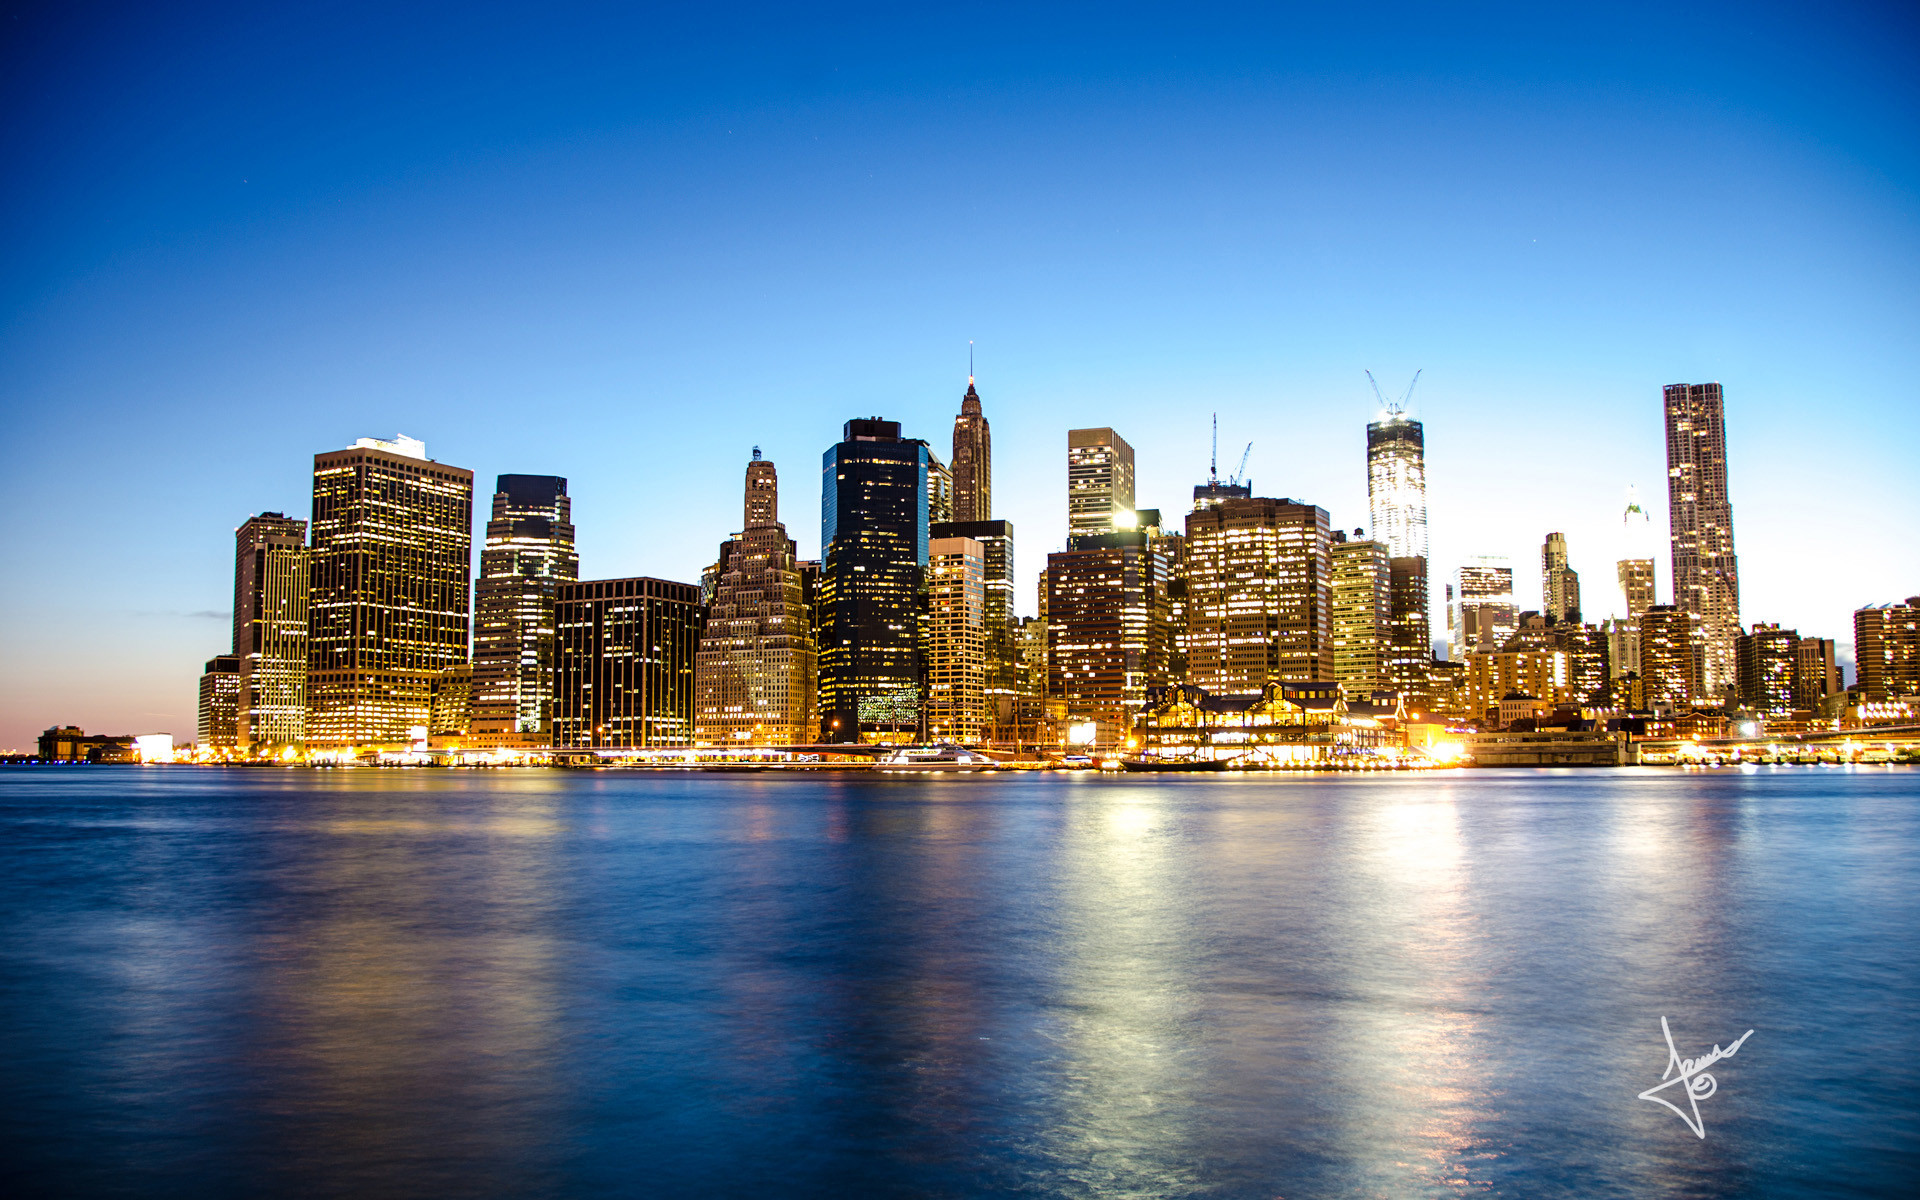 1920 x manhattan skyline wallpaper for desktop background by Holden Young